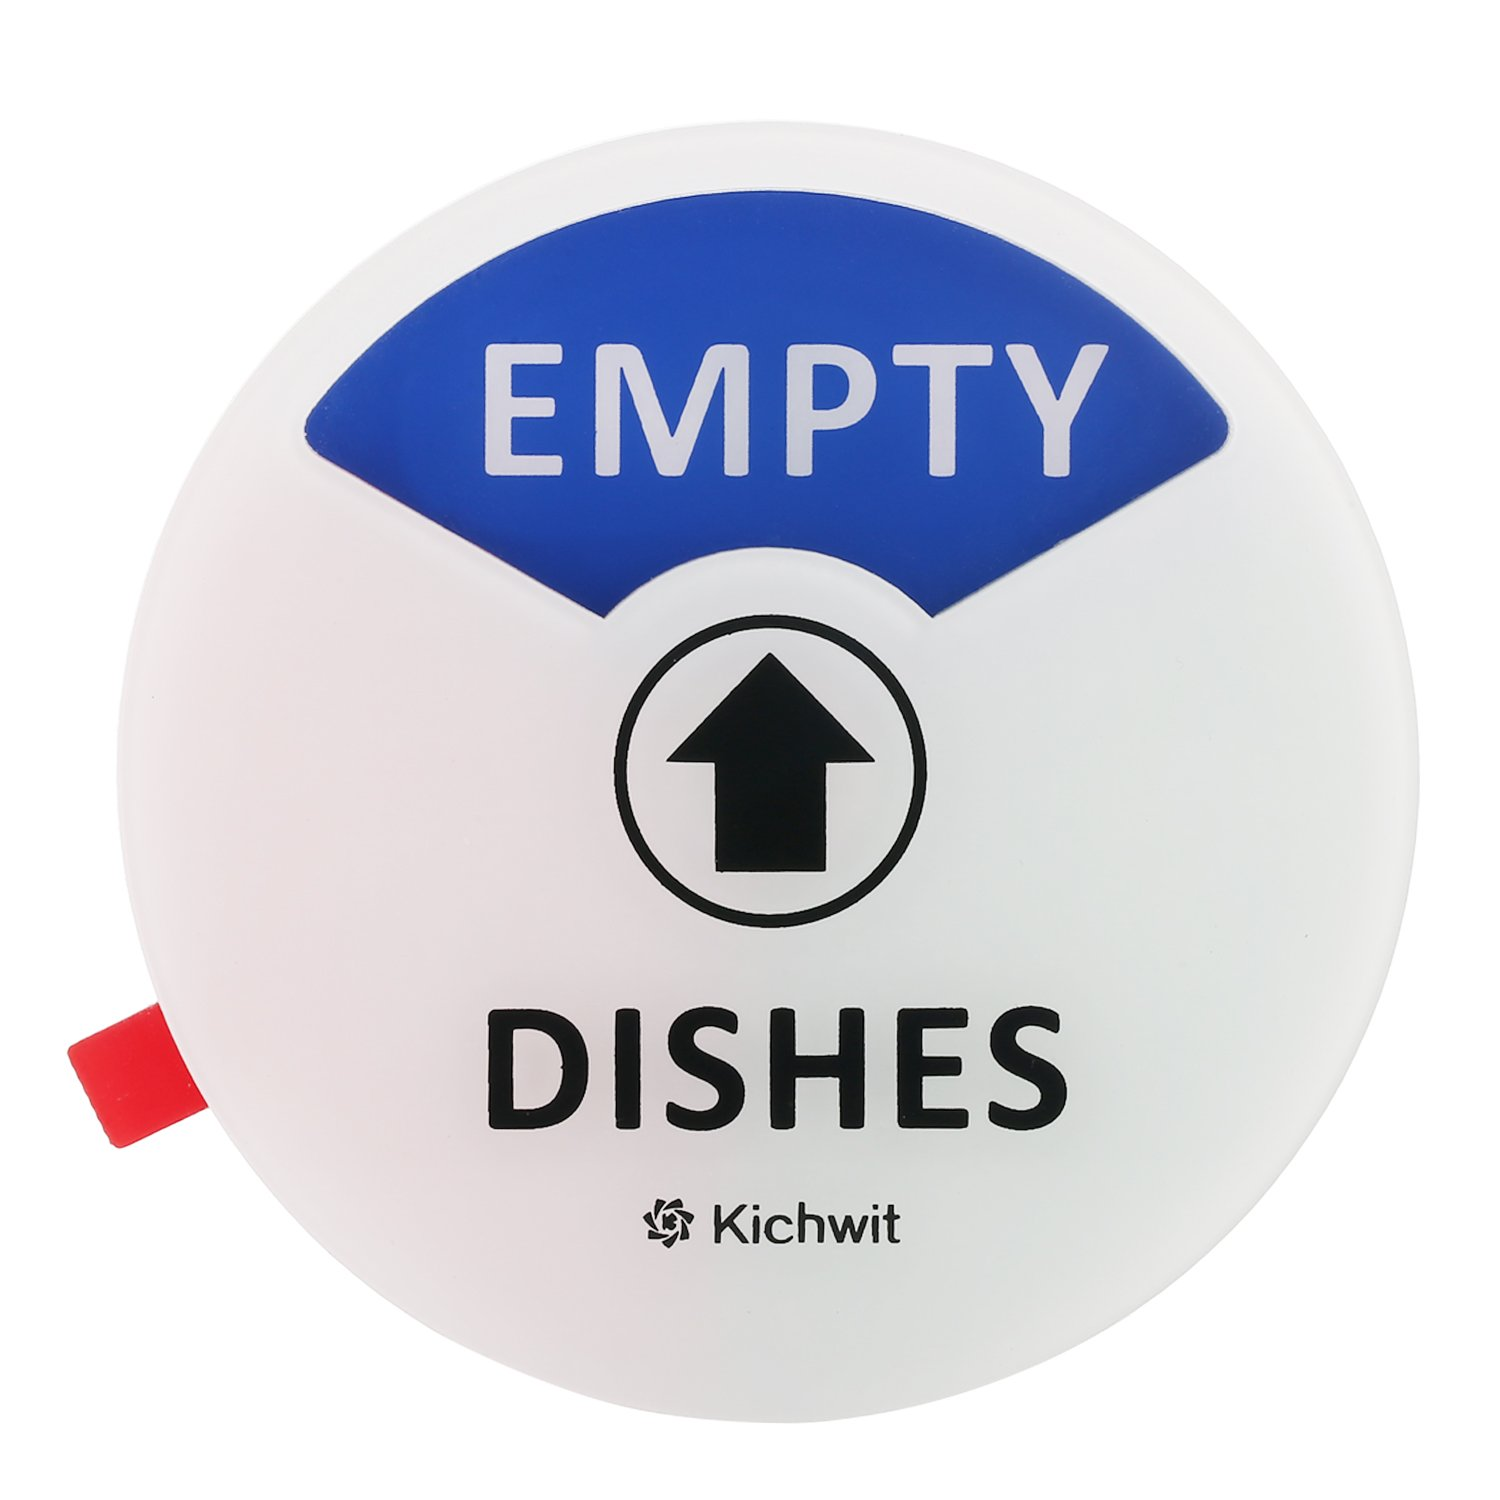 """Kichwit Clean Dirty Dishwasher Magnet with the 3rd Option """"Empty"""", Non-Scratch Strong Magnet Backing, Residue Free Adhesive Included, 3.5"""" Diameter, White"""